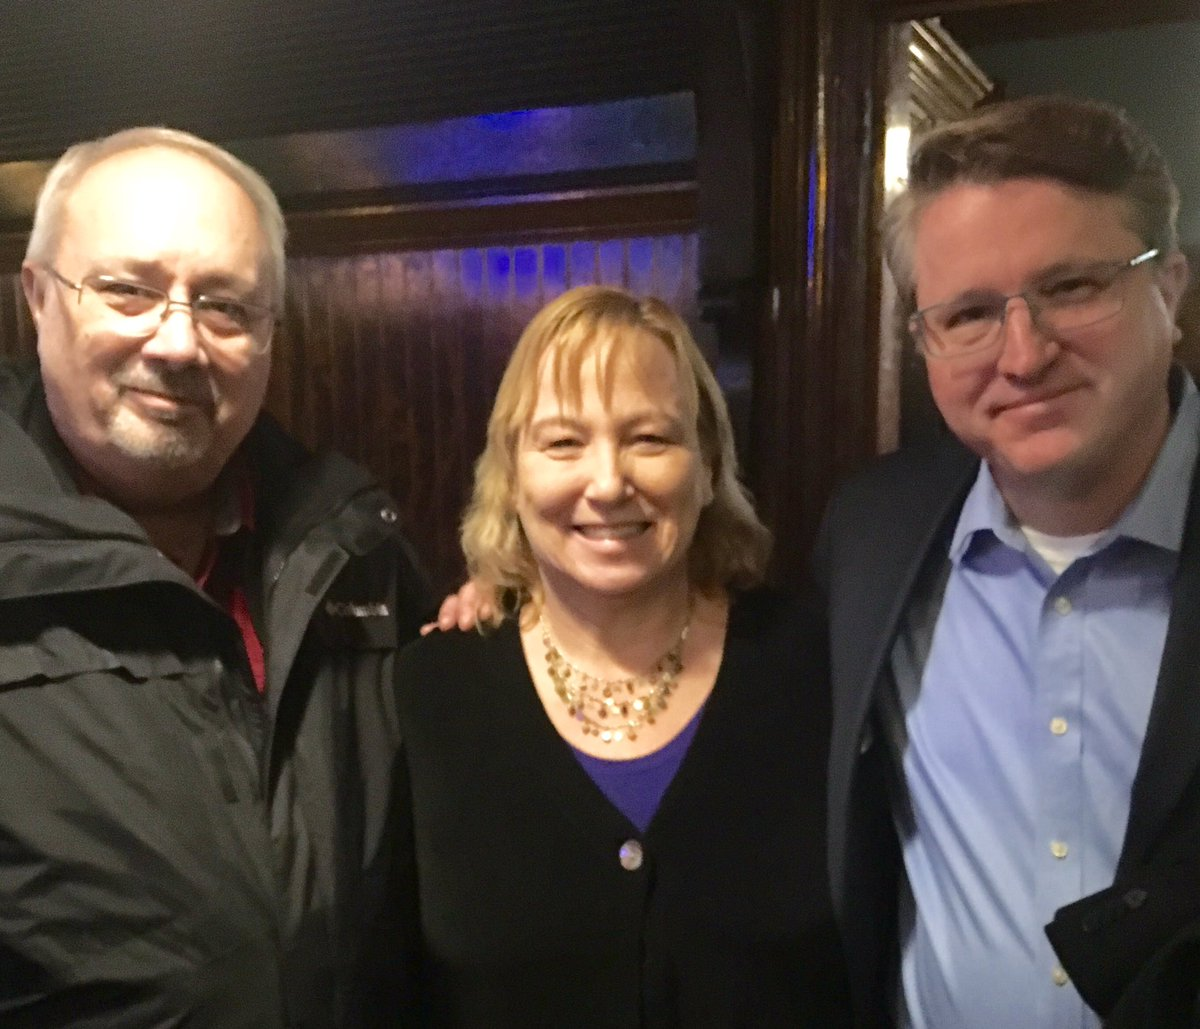 I enjoyed learning about independent parties with Michael Burger and Brian Mistrot of the Alliance Party and members of the Independence Party of Minnesota last weekend #allianceparty #independenceparty #politics #solutions #hope @AlliancePTY @IndyMN